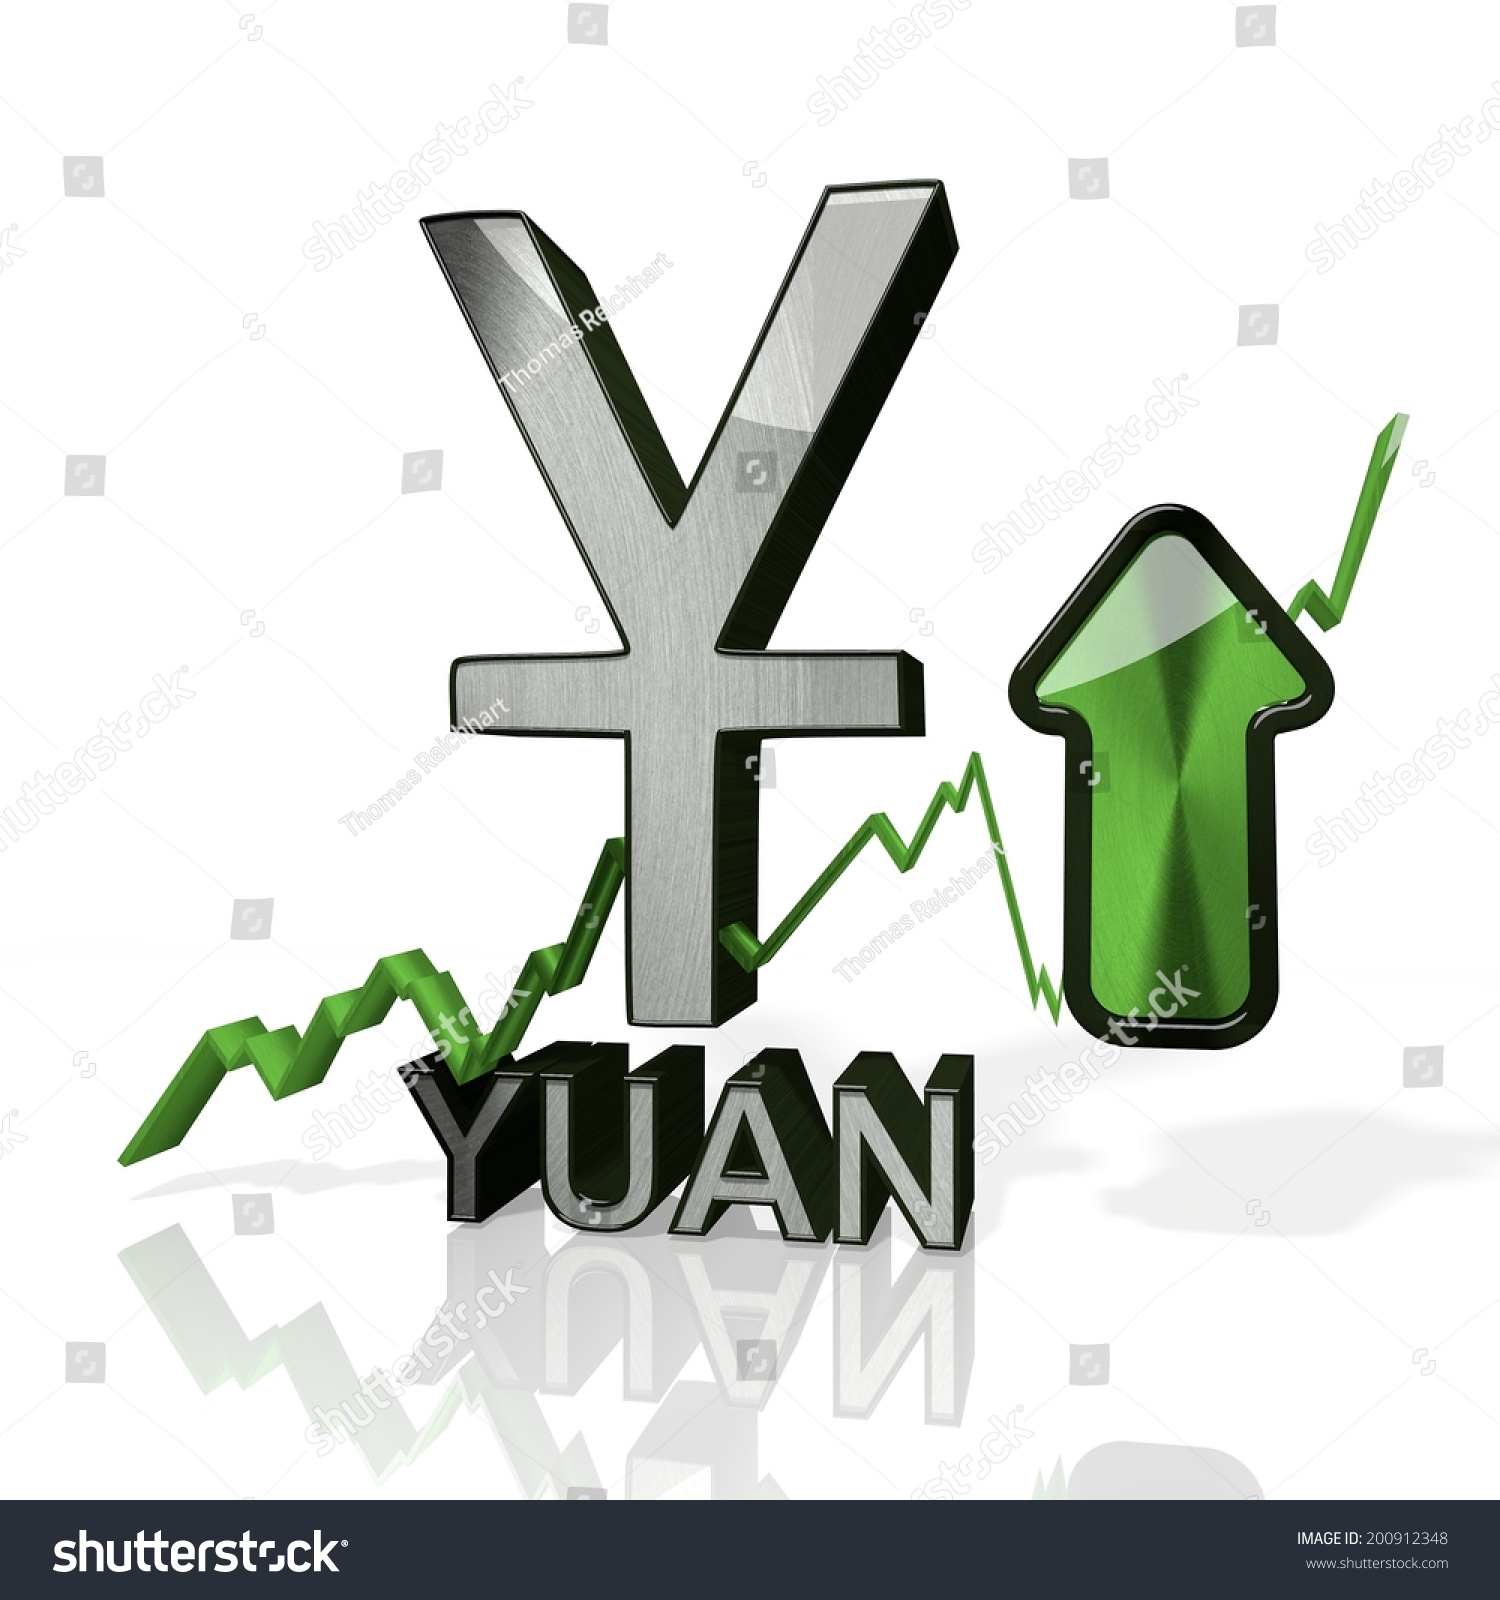 3d rendered symbol china yuan renminbi stock illustration 3d rendered symbol of china yuan renminbi currency with up stock market trend arrows in stylish biocorpaavc Choice Image